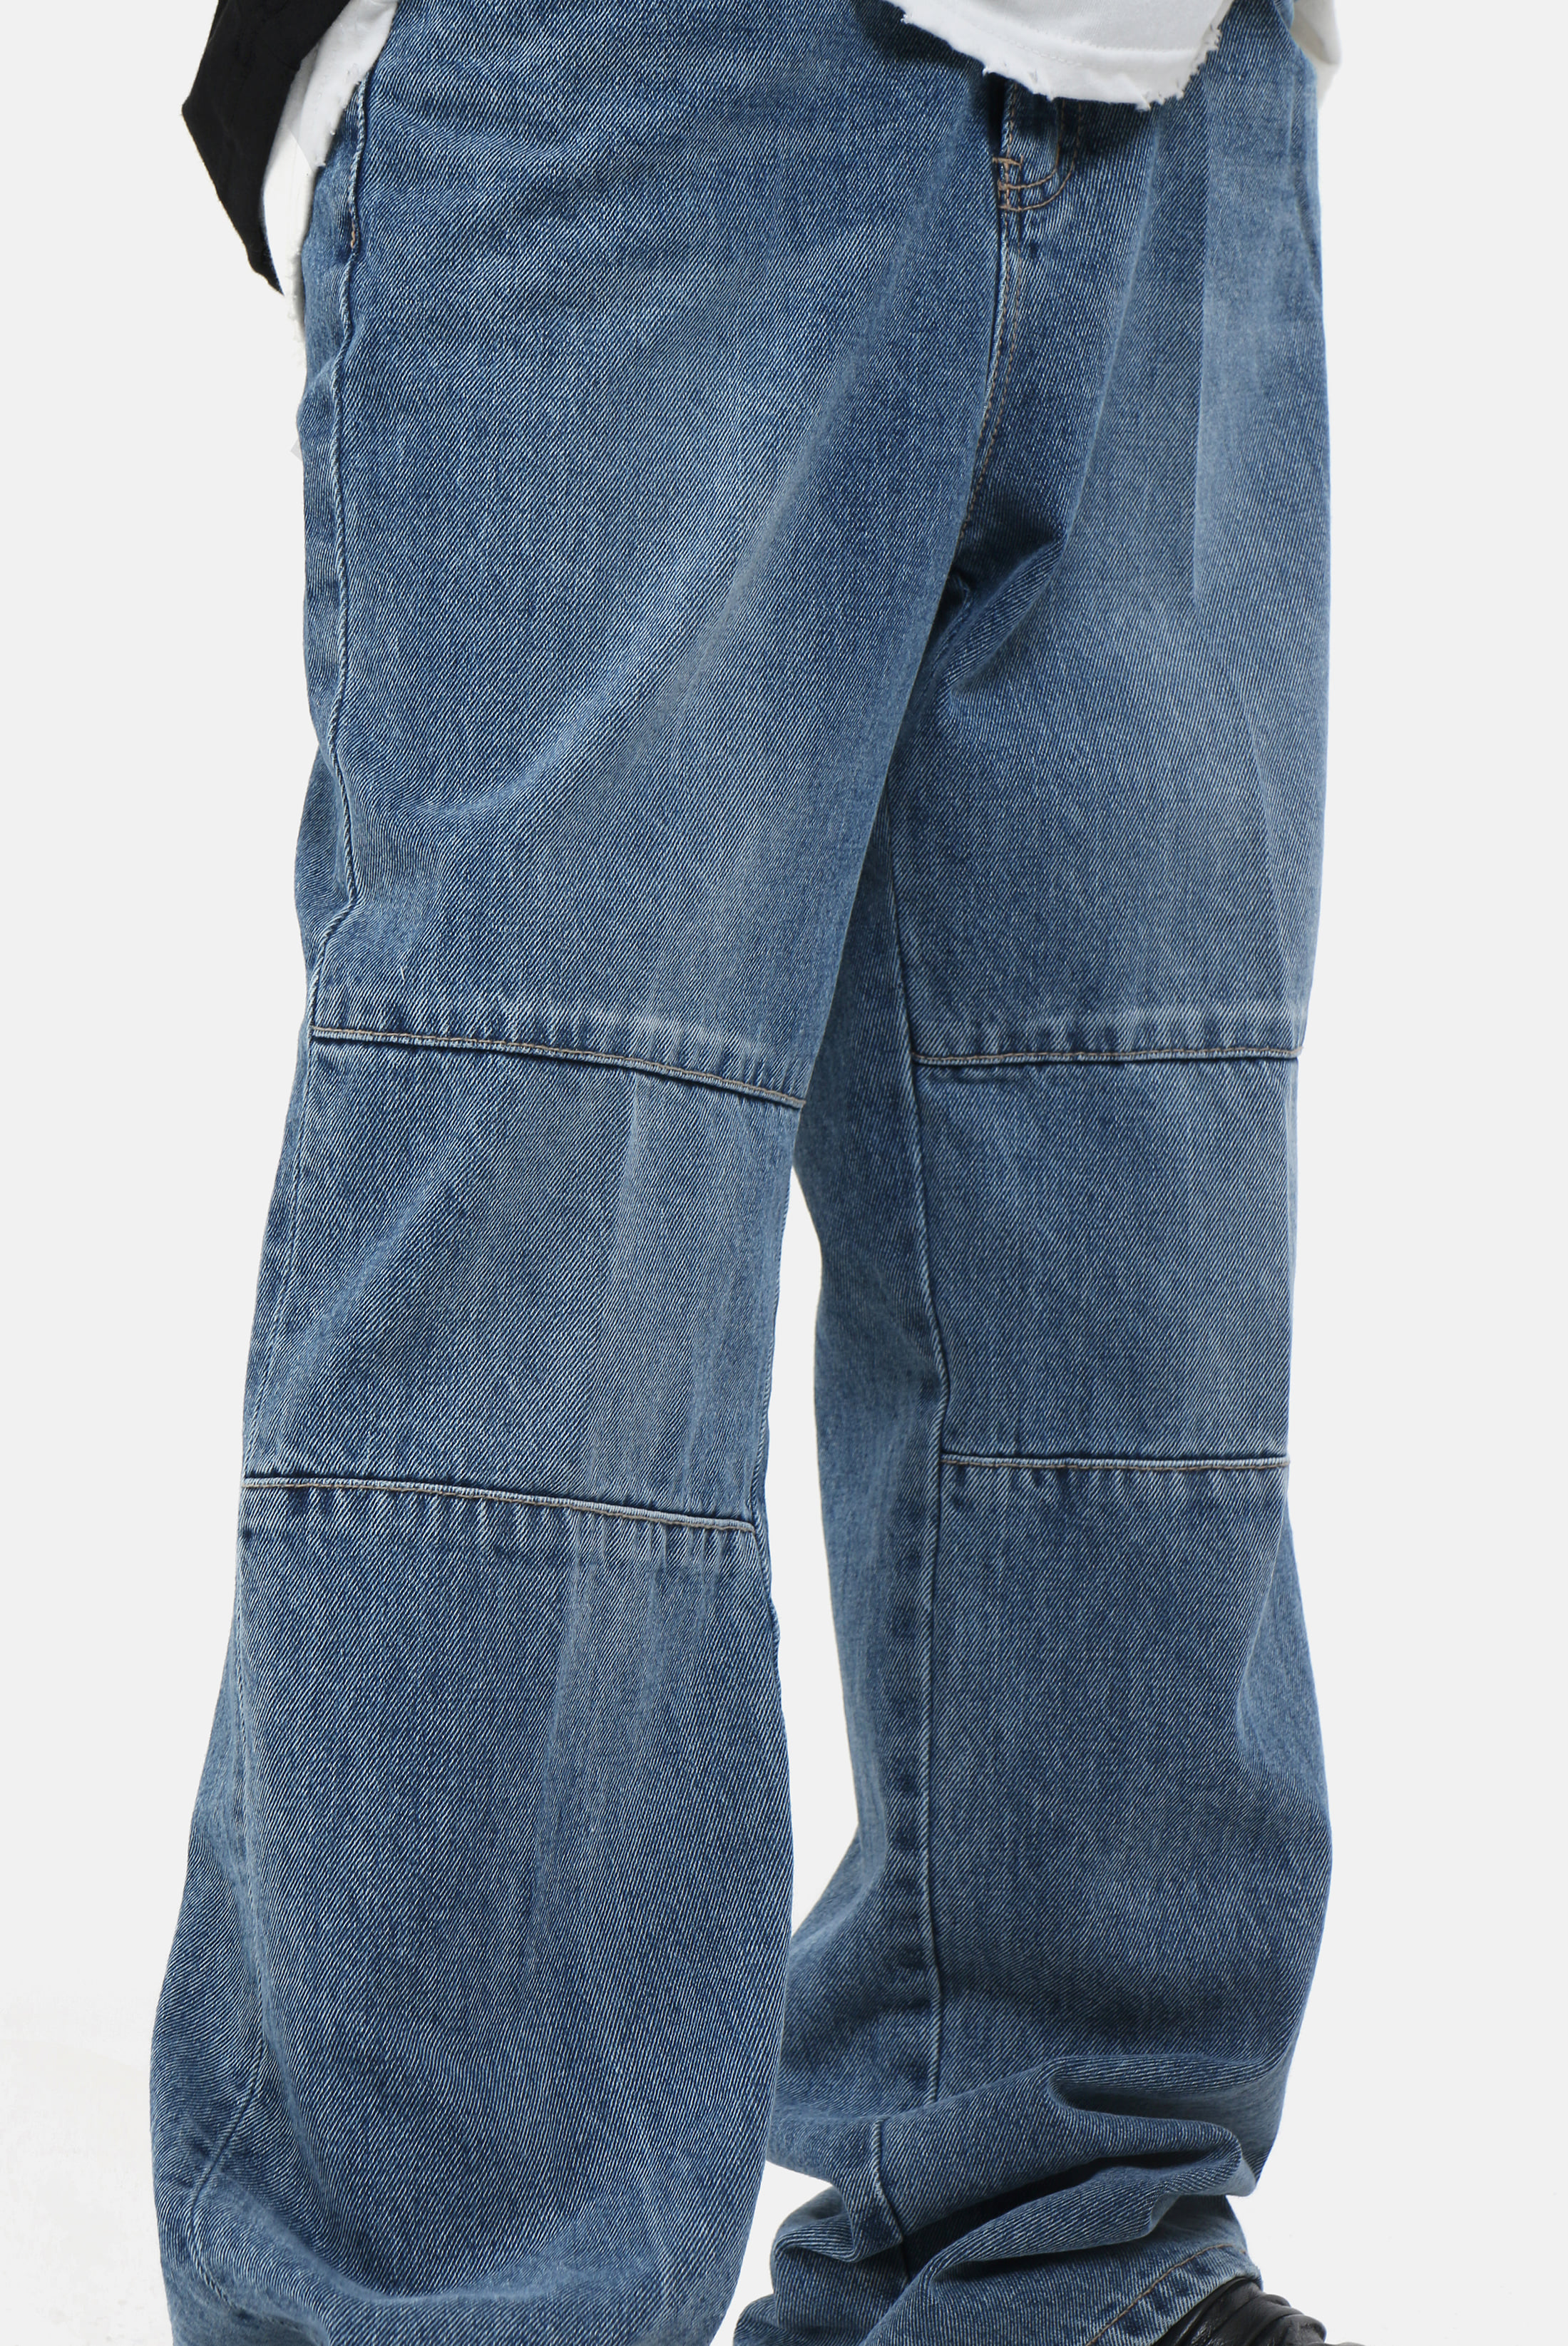 Knee_Incision Deep Blue_Jean